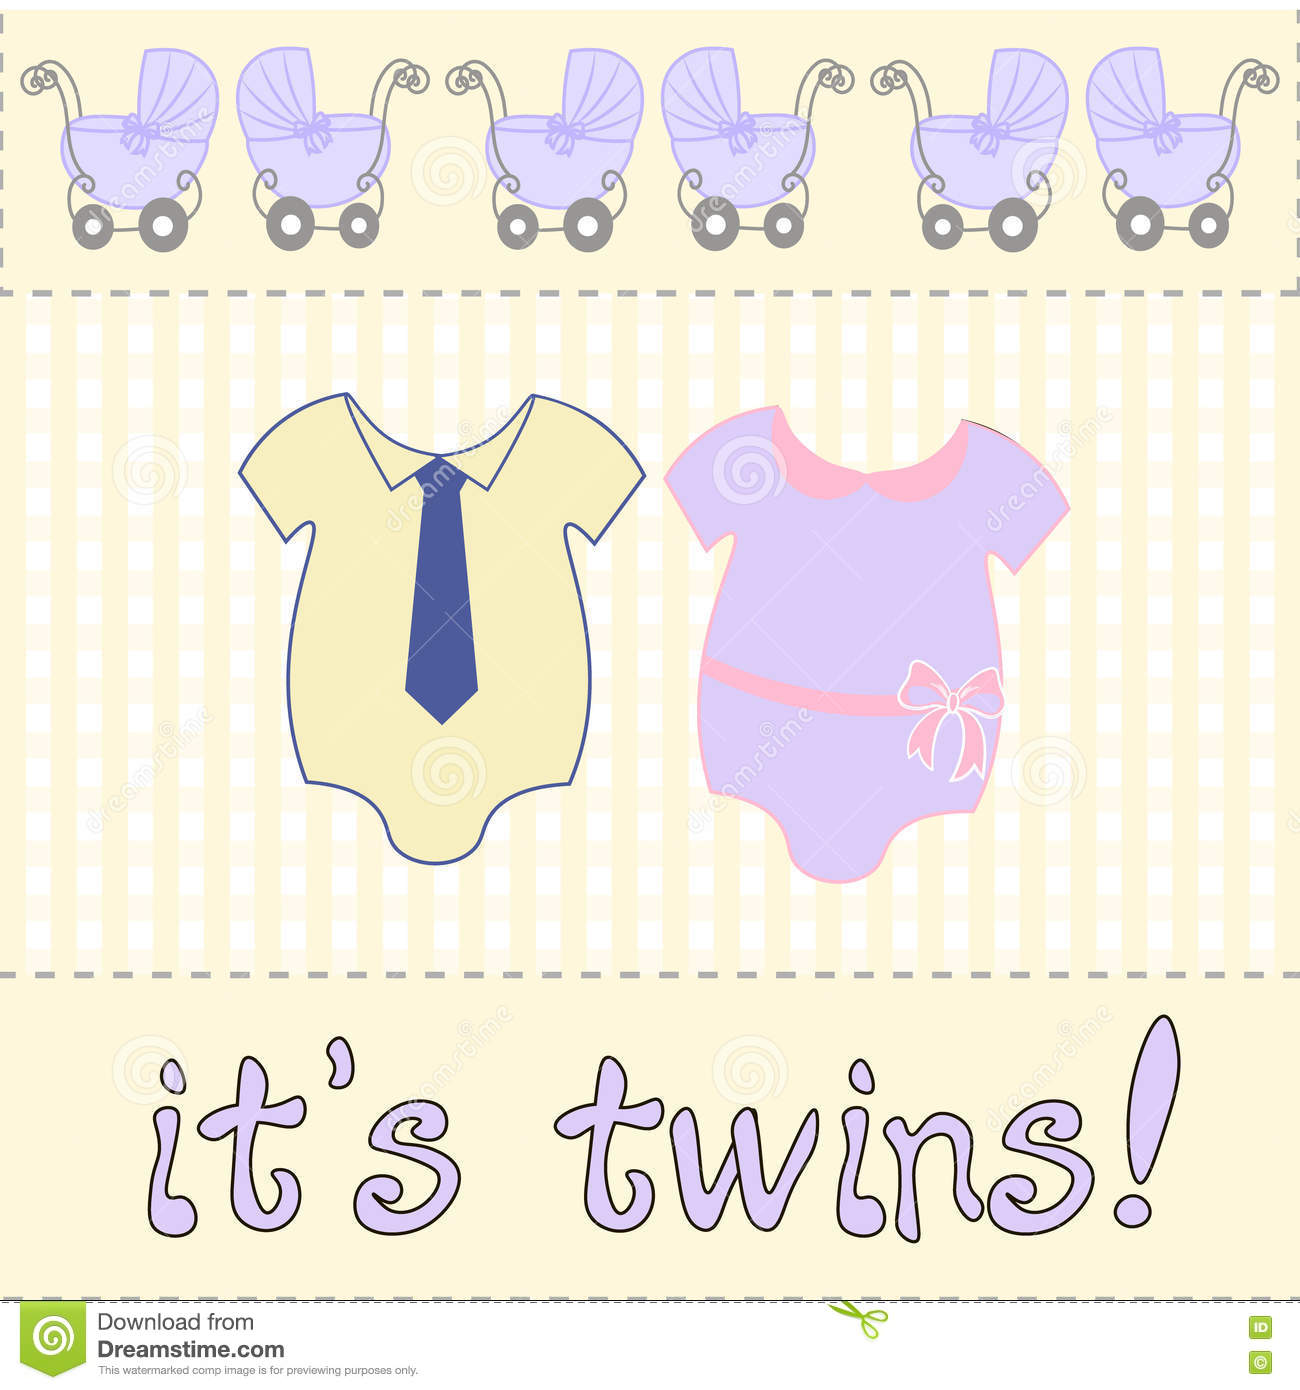 vector for baby shower or birthday invitation card two bodysuits newborn twins the twins inscription stock vector illustration of holiday customizable 78563635